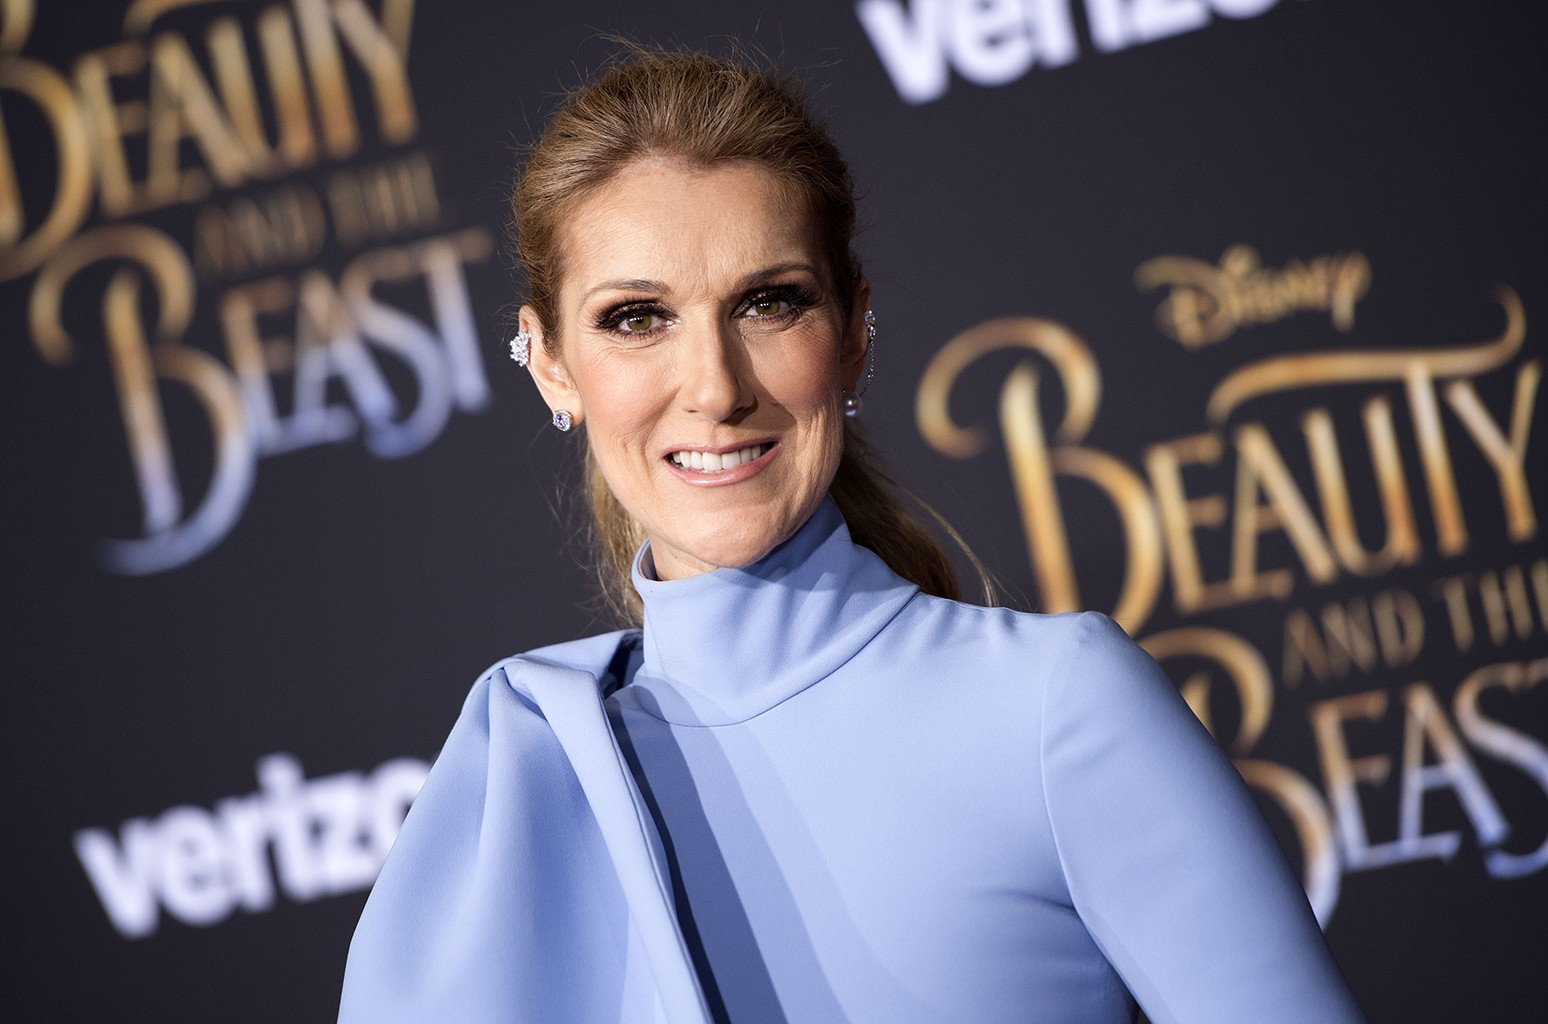 Celine Dion attends the world premiere of Disney's Beauty and the Beast at El Capitan Theatre on March 2, 2017 in Hollywood, Calif.